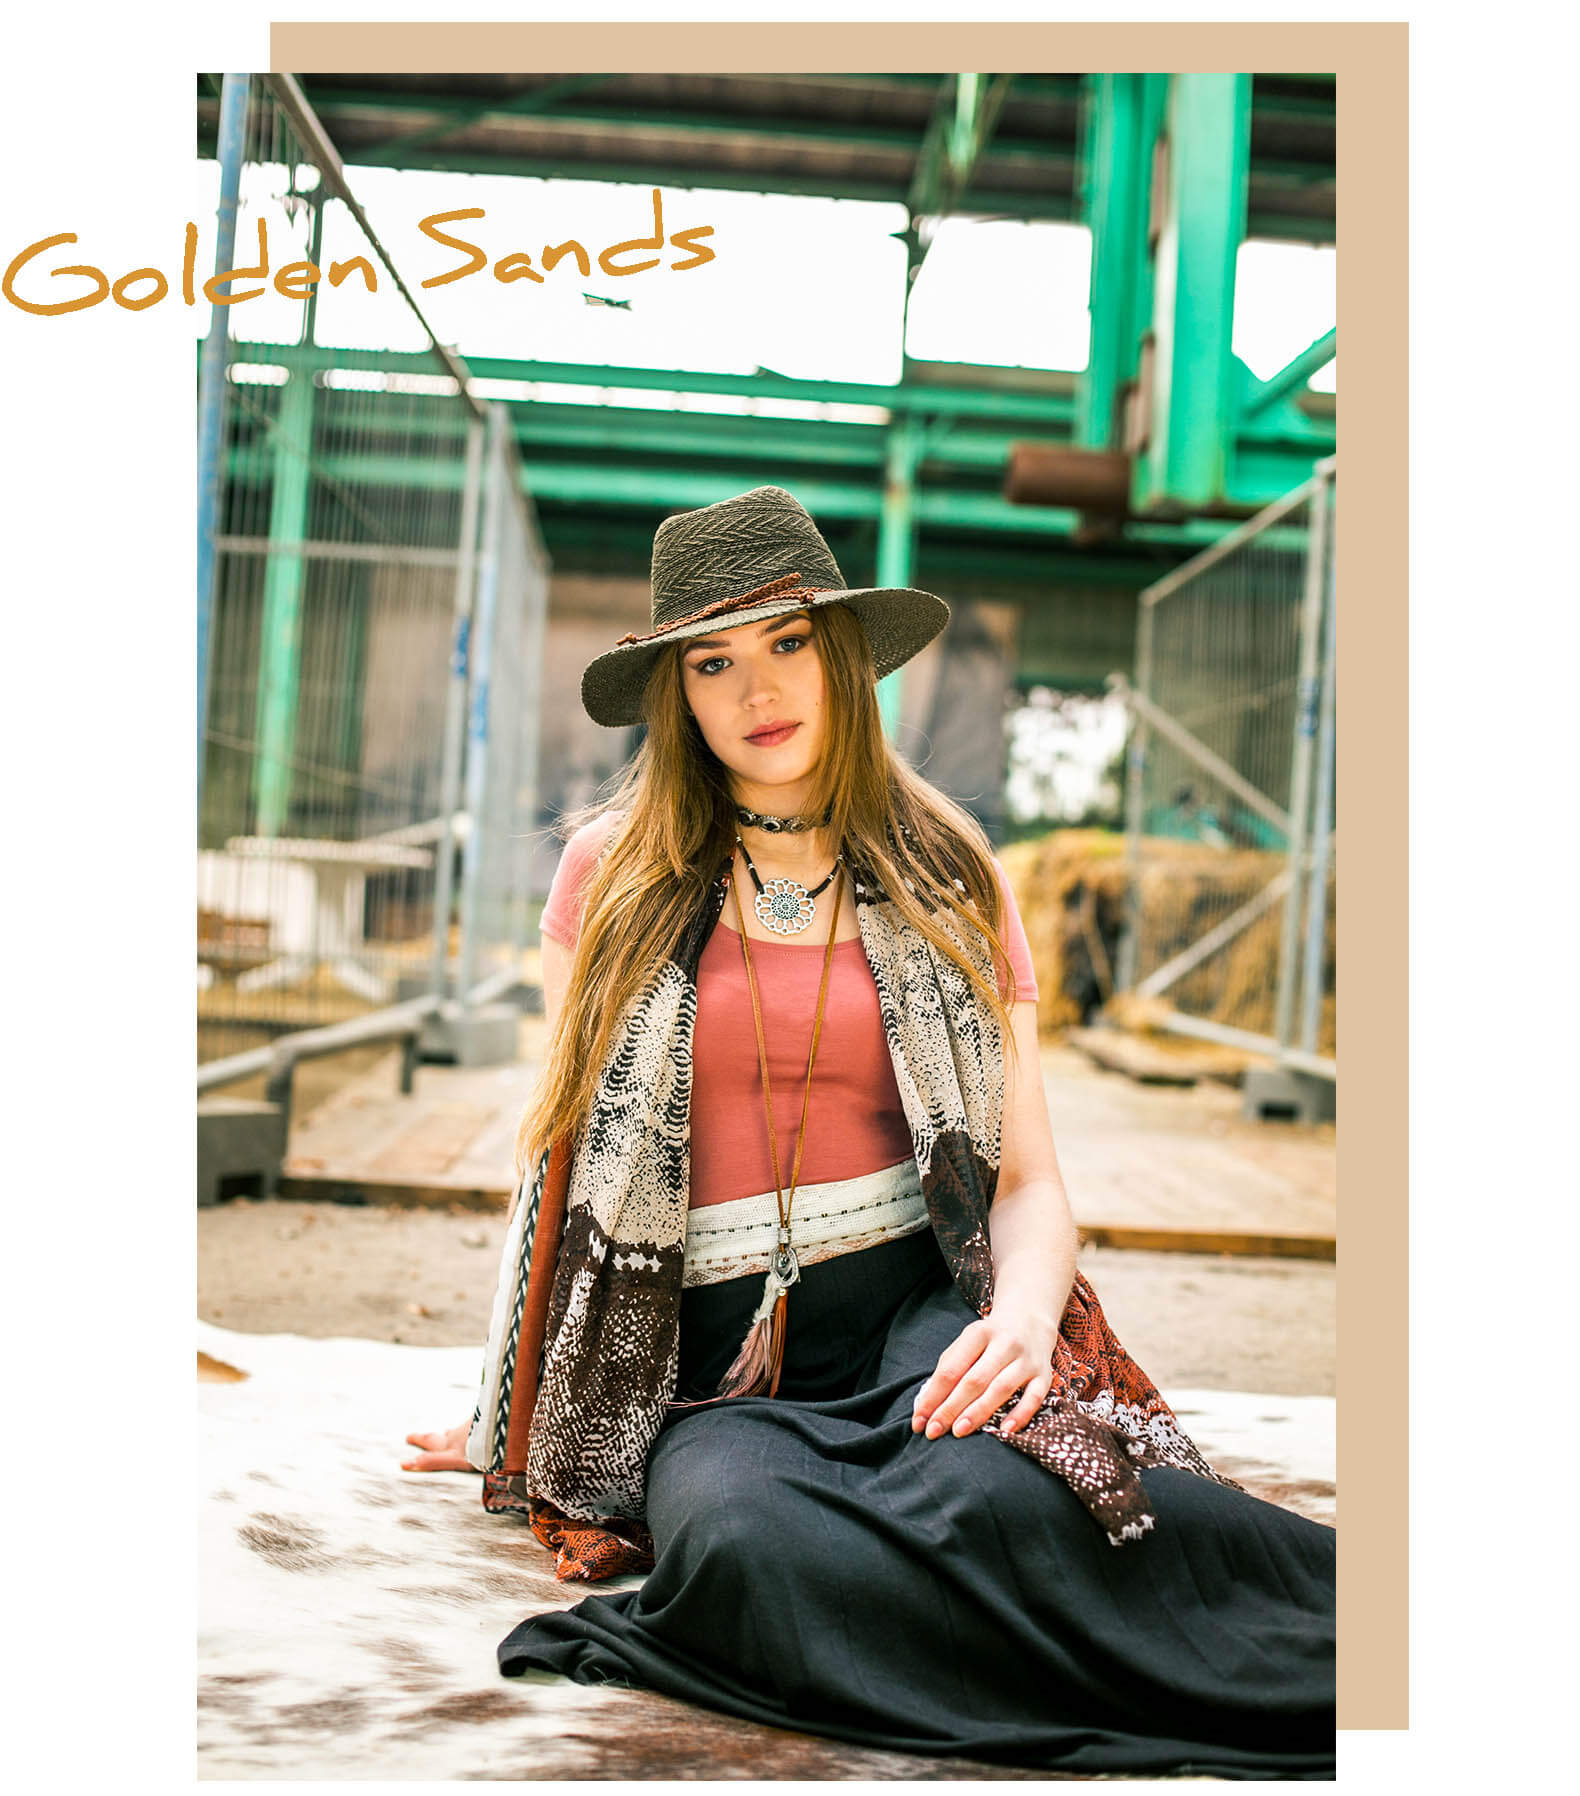 golden sands thema collection